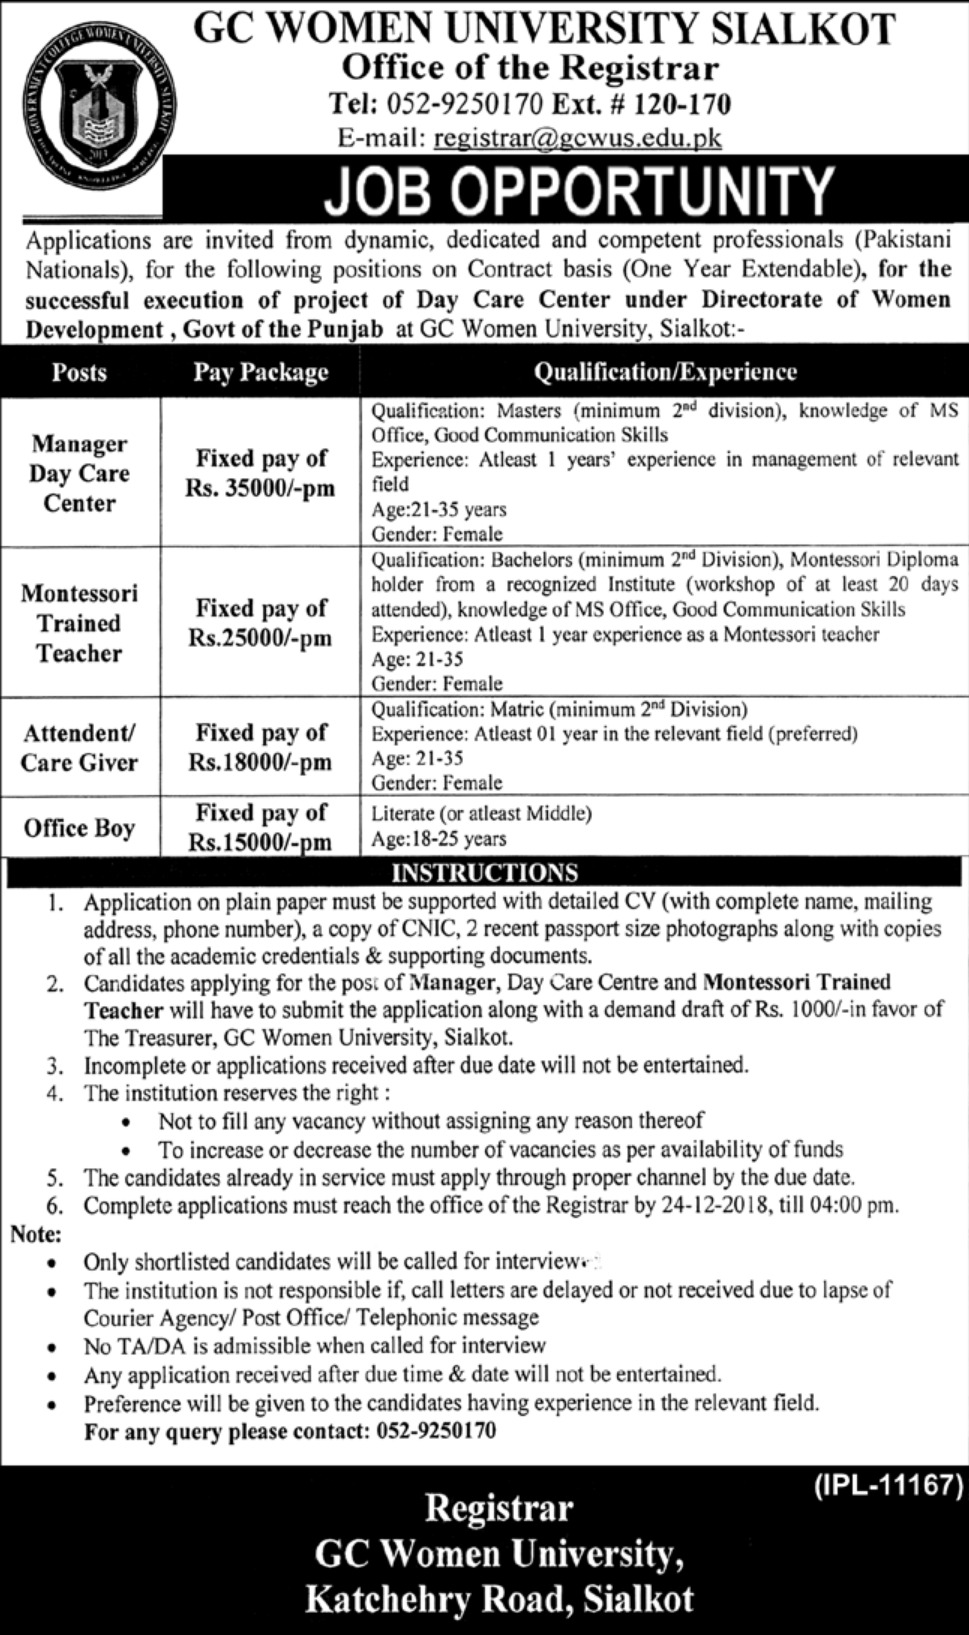 GC Women University Sialkot Jobs 2018